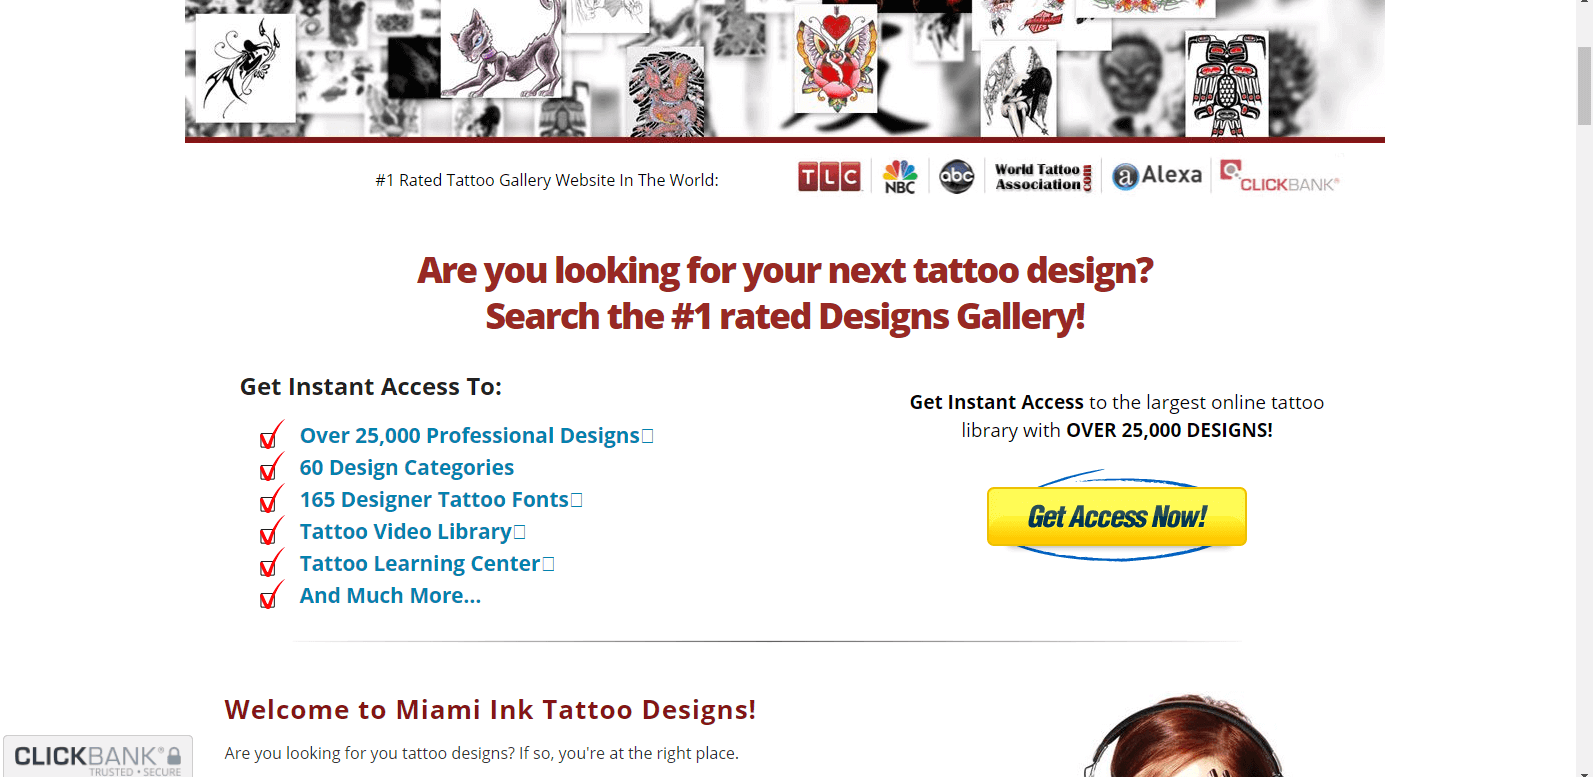 Miami Ink Tattoo Designs Review: Which One Is Your Favorite Design?